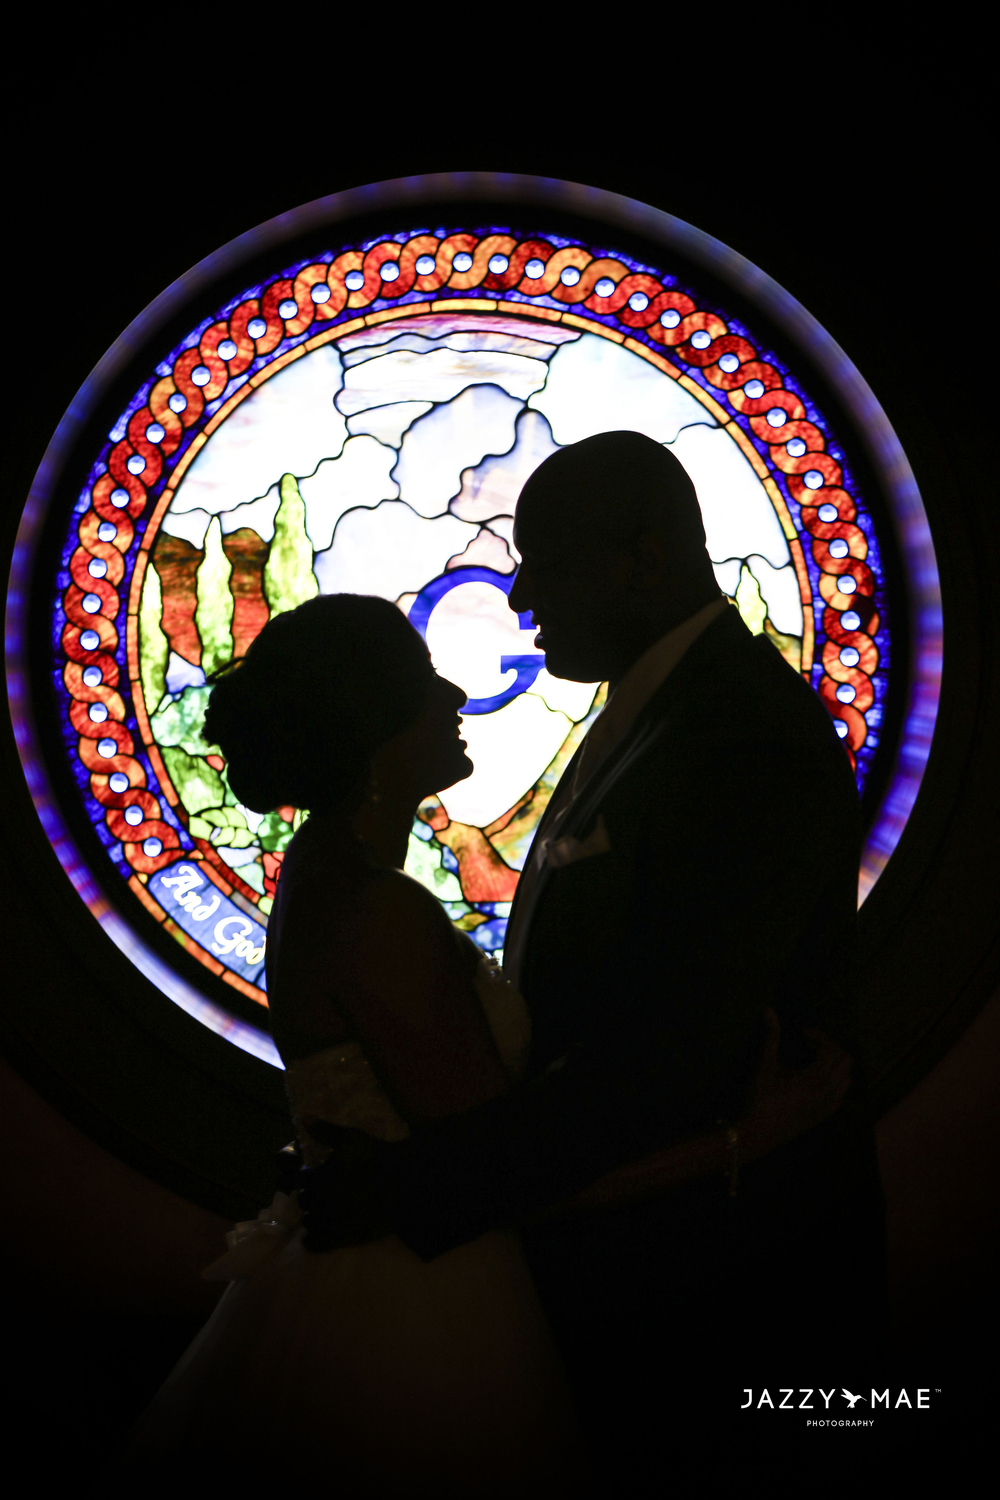 02_Durr_Wedding_Cleveland_Wedding_Photography (1).JPG